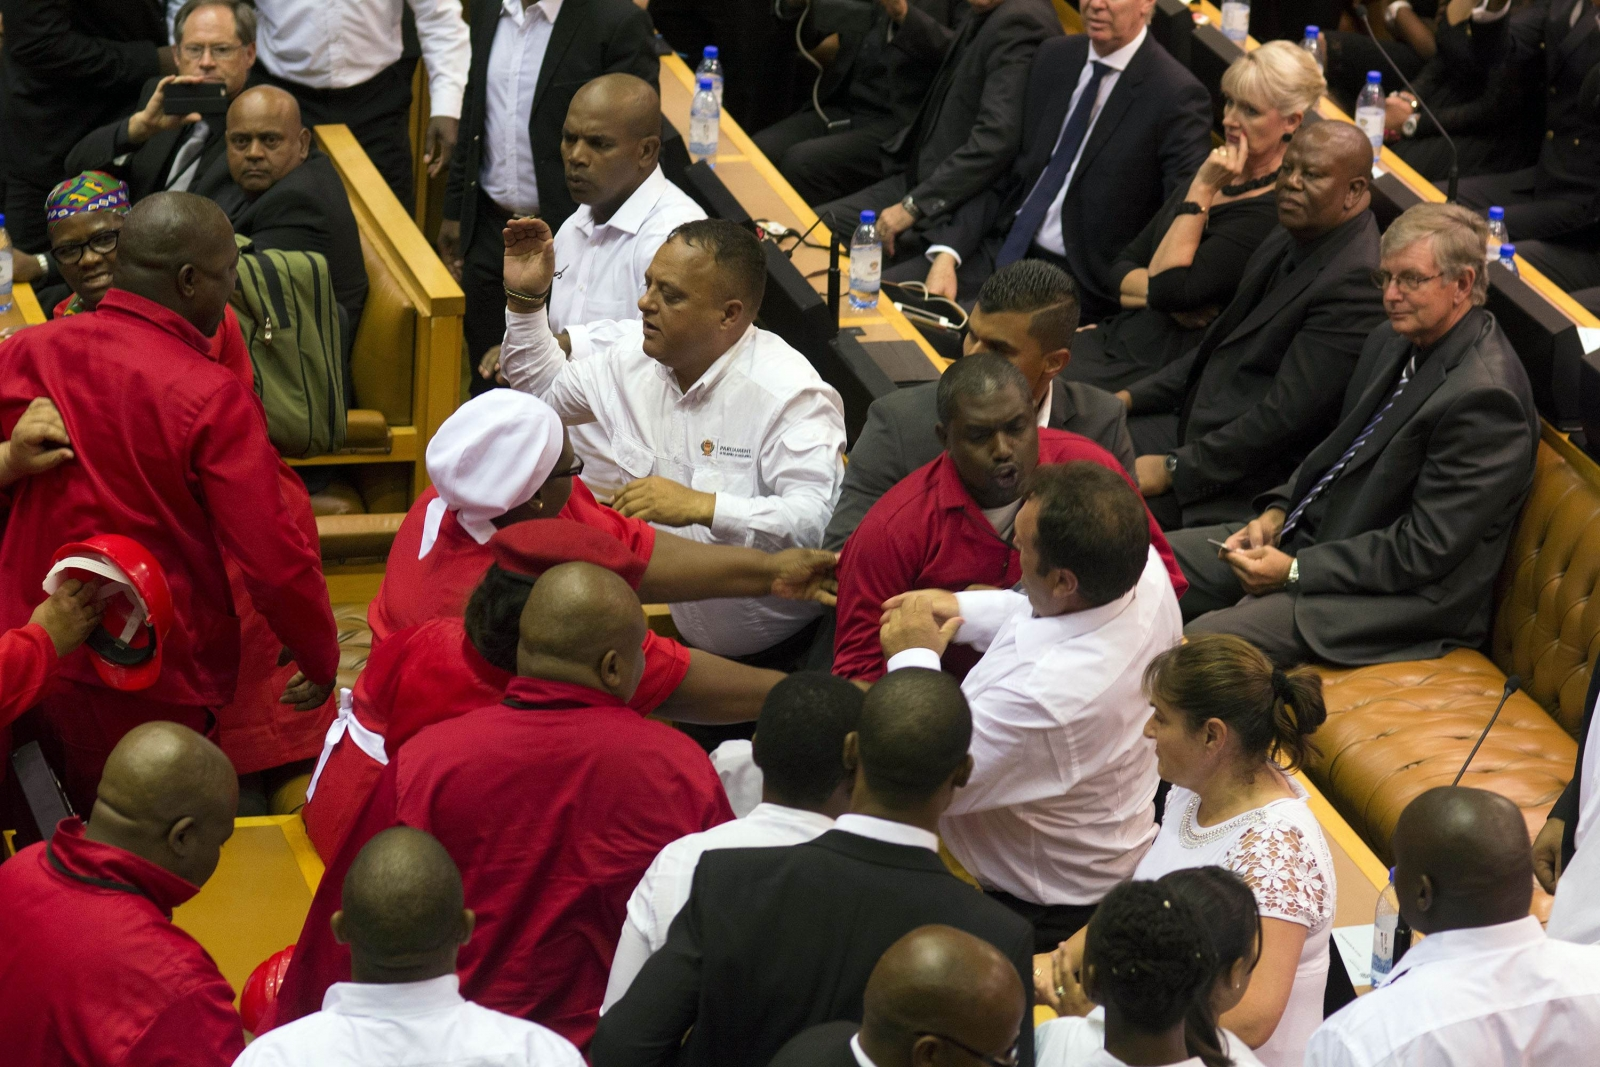 Julius Malema party members clash with officials in South Africa parliament